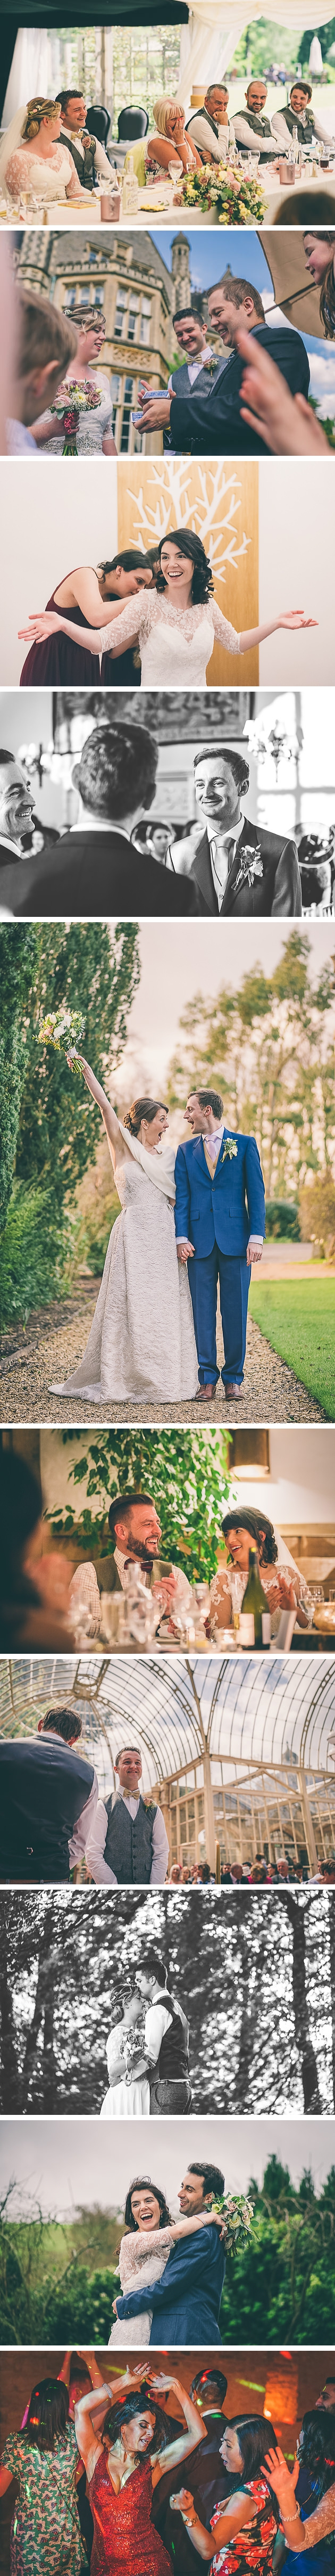 Couples posing at Elmore Court